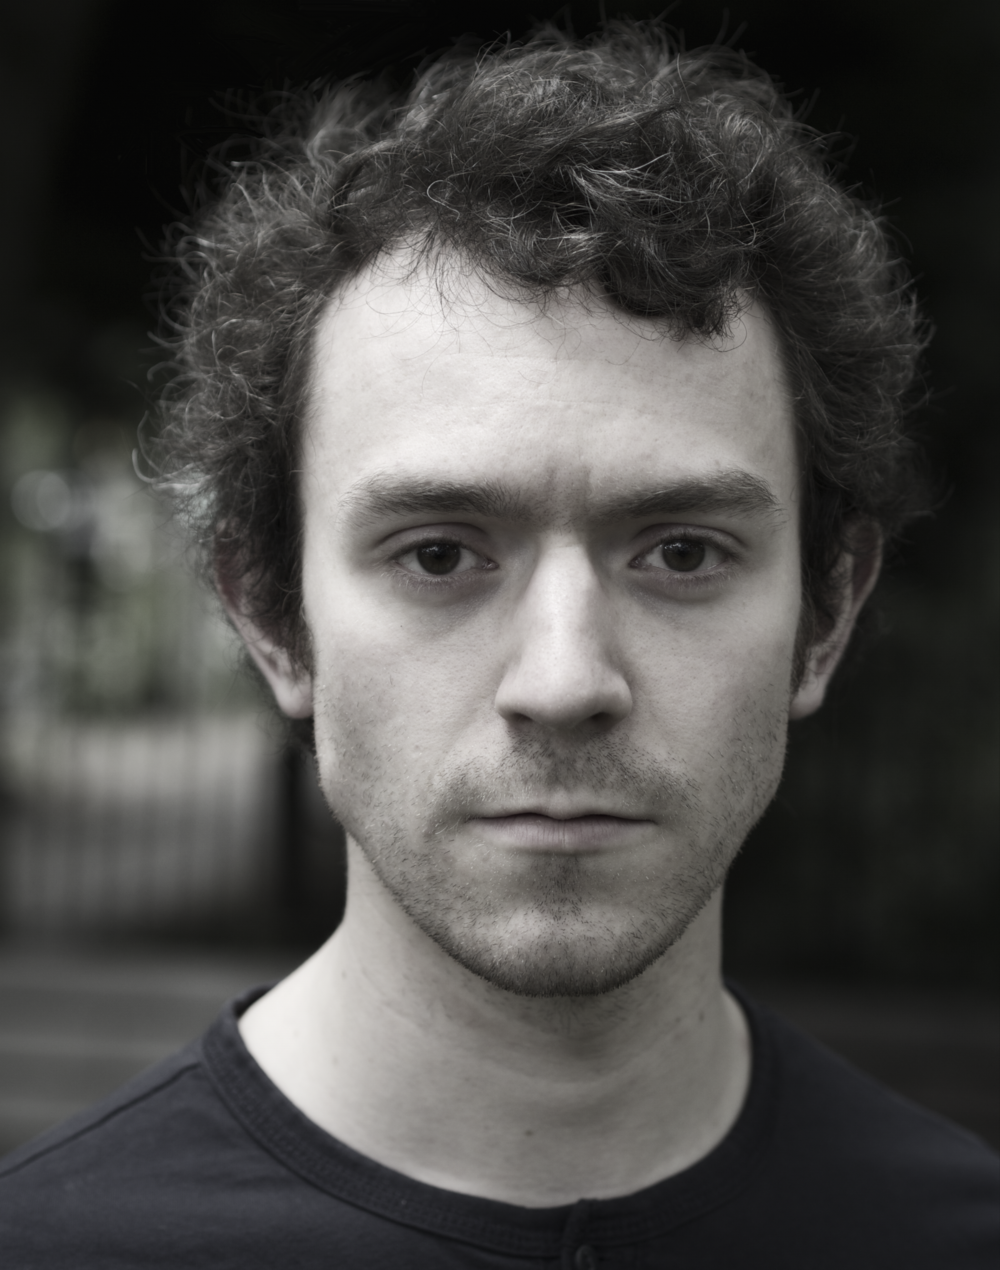 Matthew Coulton - ZBROZHEK   Matthew trained at RCSSD (BA Hons Acting: Collaborative and Devised Theatre). He has studied movement with Imogen Knight, clowning with John Wright, and trained with international artists such as Miklós Bács and Marcello Magni.  Recent Theatre: George's Marvellous Medicine (Leicester Curve/Rose Theatre UK tour), Rodin: Feet of Clay (British Museum), Tell Me The Truth About Love (Ship Shape Theatre), Father Christmas (Lyric Hammersmith/macBirmingham), The Mutant Man (The Space), The Winter's Tale (ENO), The Magic Flute (Complicité), This Might Be It and Boat (Theatre N16), Goosebumps Alive (The Vaults) and J.M. Barrie's Peter Pan (Theatre by the Lake).  Matthew made his TV debut on Holby City and has recorded various voice overs for BBC Radio 4 and the World Service.